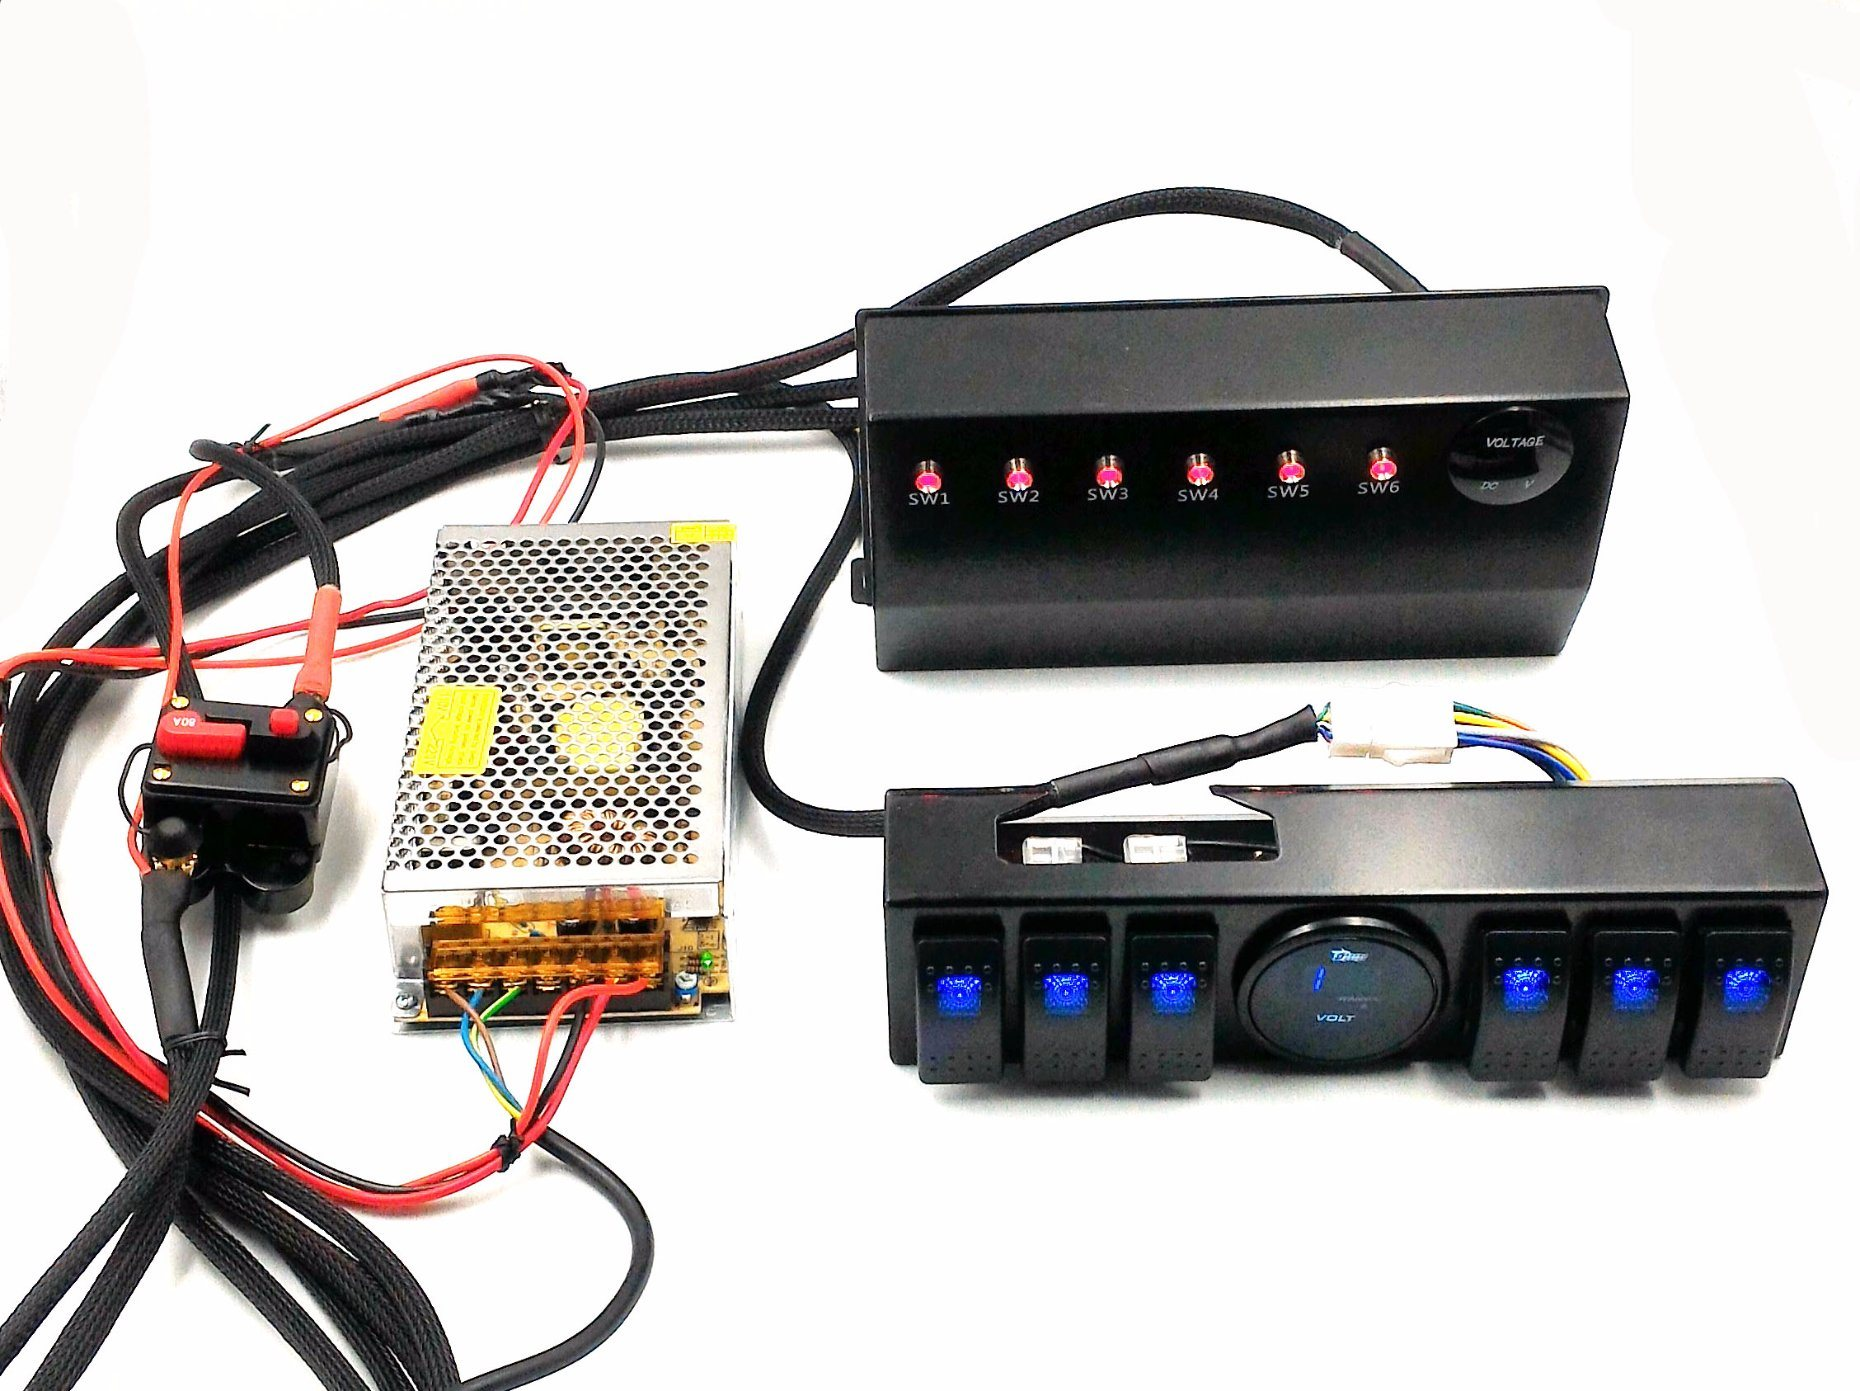 hight resolution of wrangler jk 6 switch panel with control and source system relay box assemblies for jeep jk jku 07 17